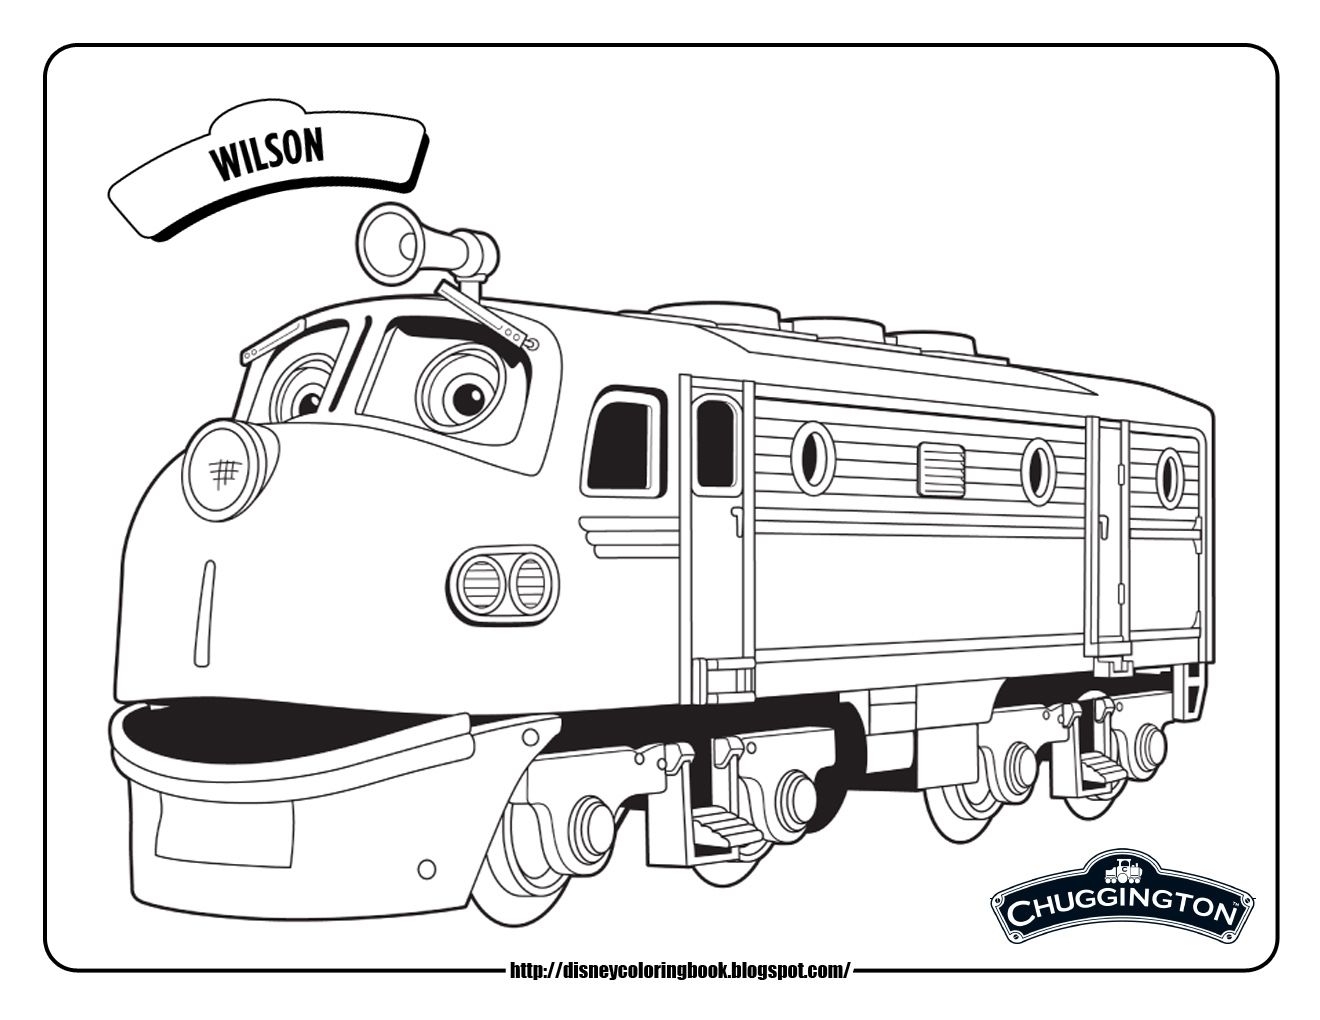 chuggington coloring pages | chuggington wilson train coloring pages ...